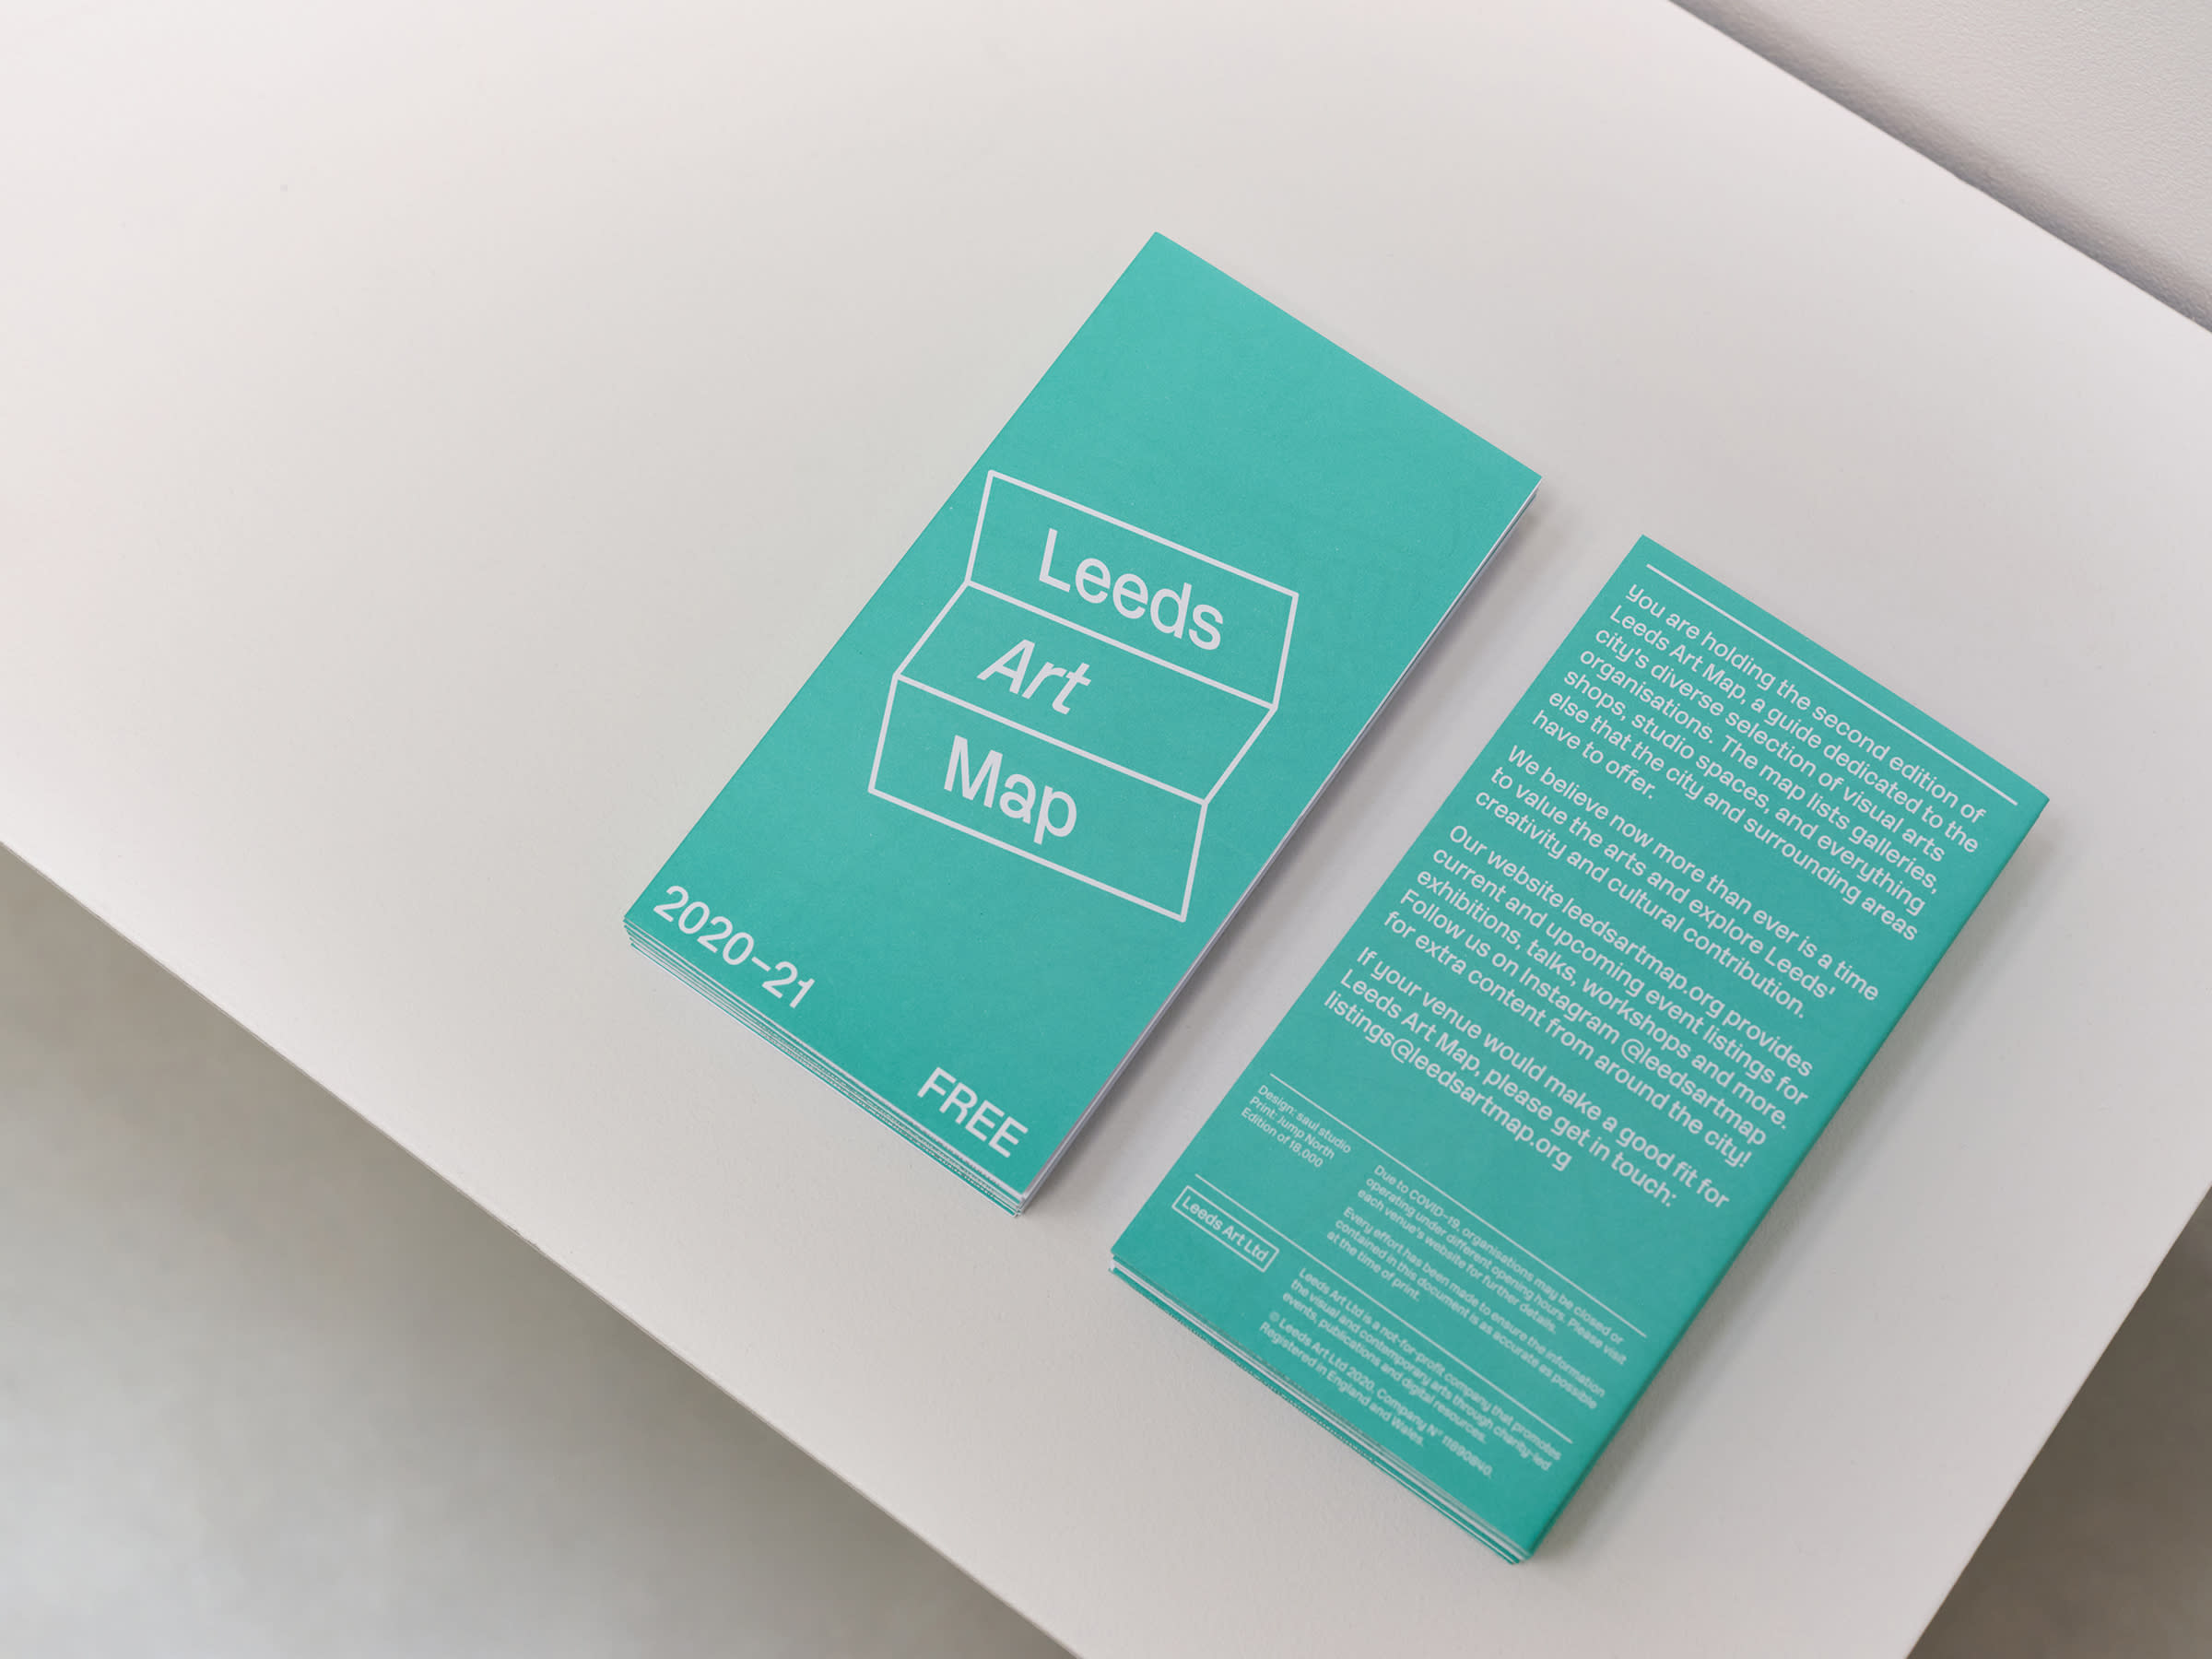 saul studio — Leeds Art Map